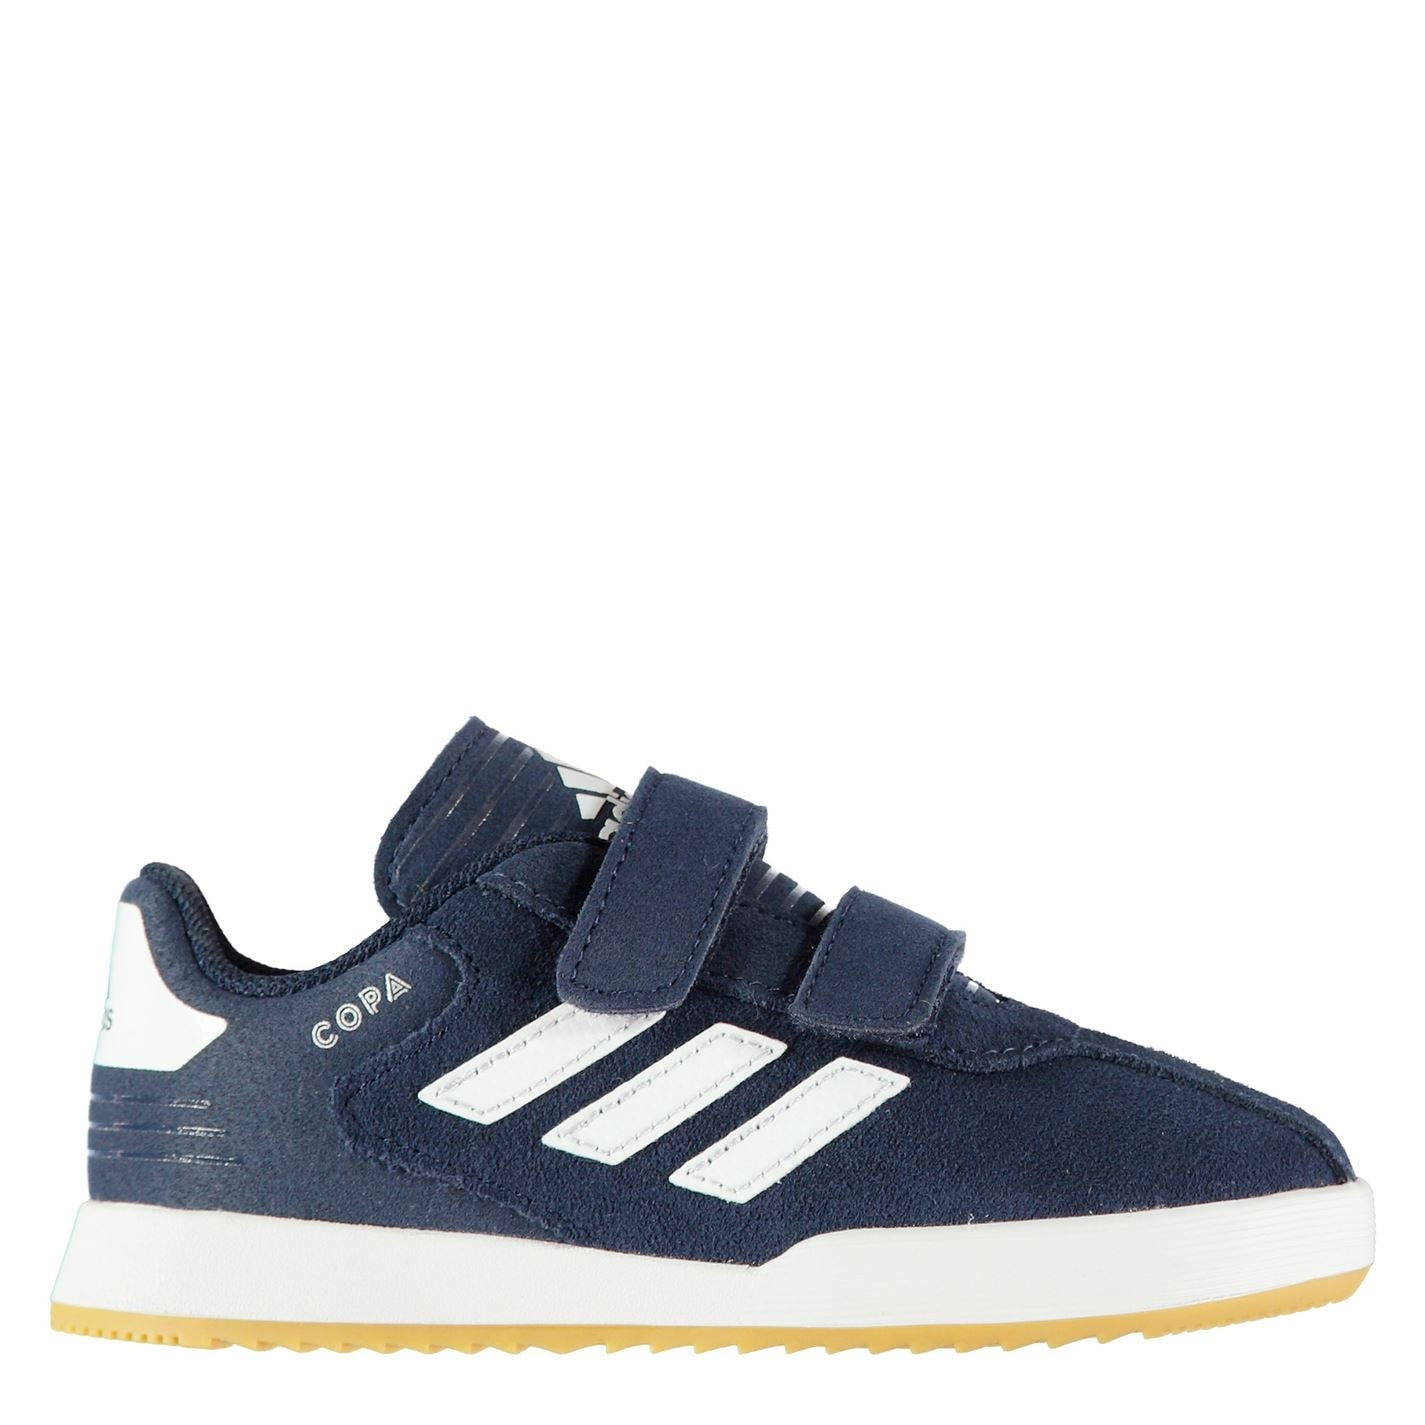 adidas Copa Super Suede Infants Trainers Navy/White